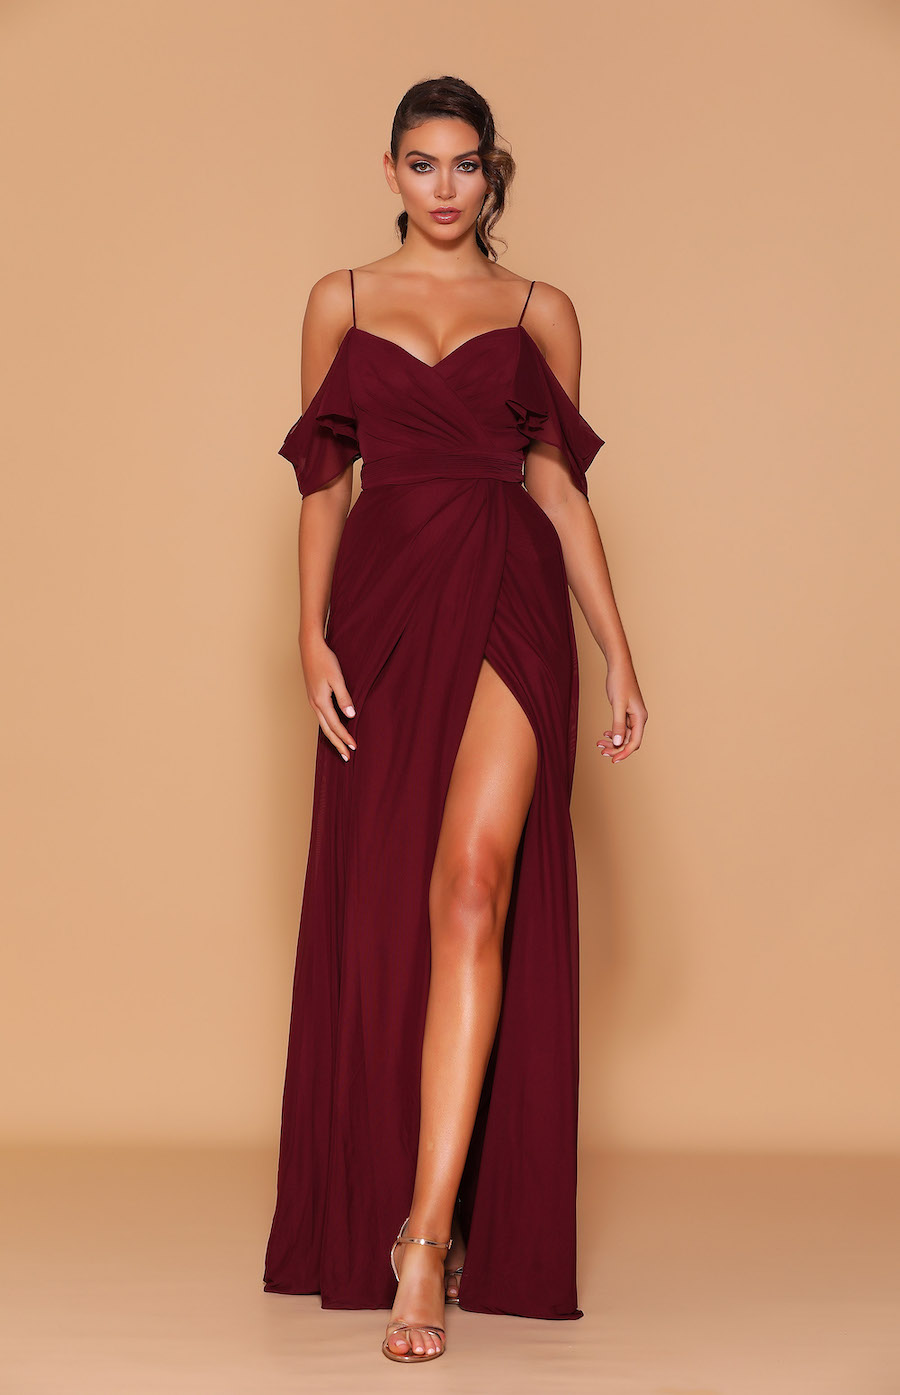 Spaghetti strap dress with draped shoulder and rouched bodice